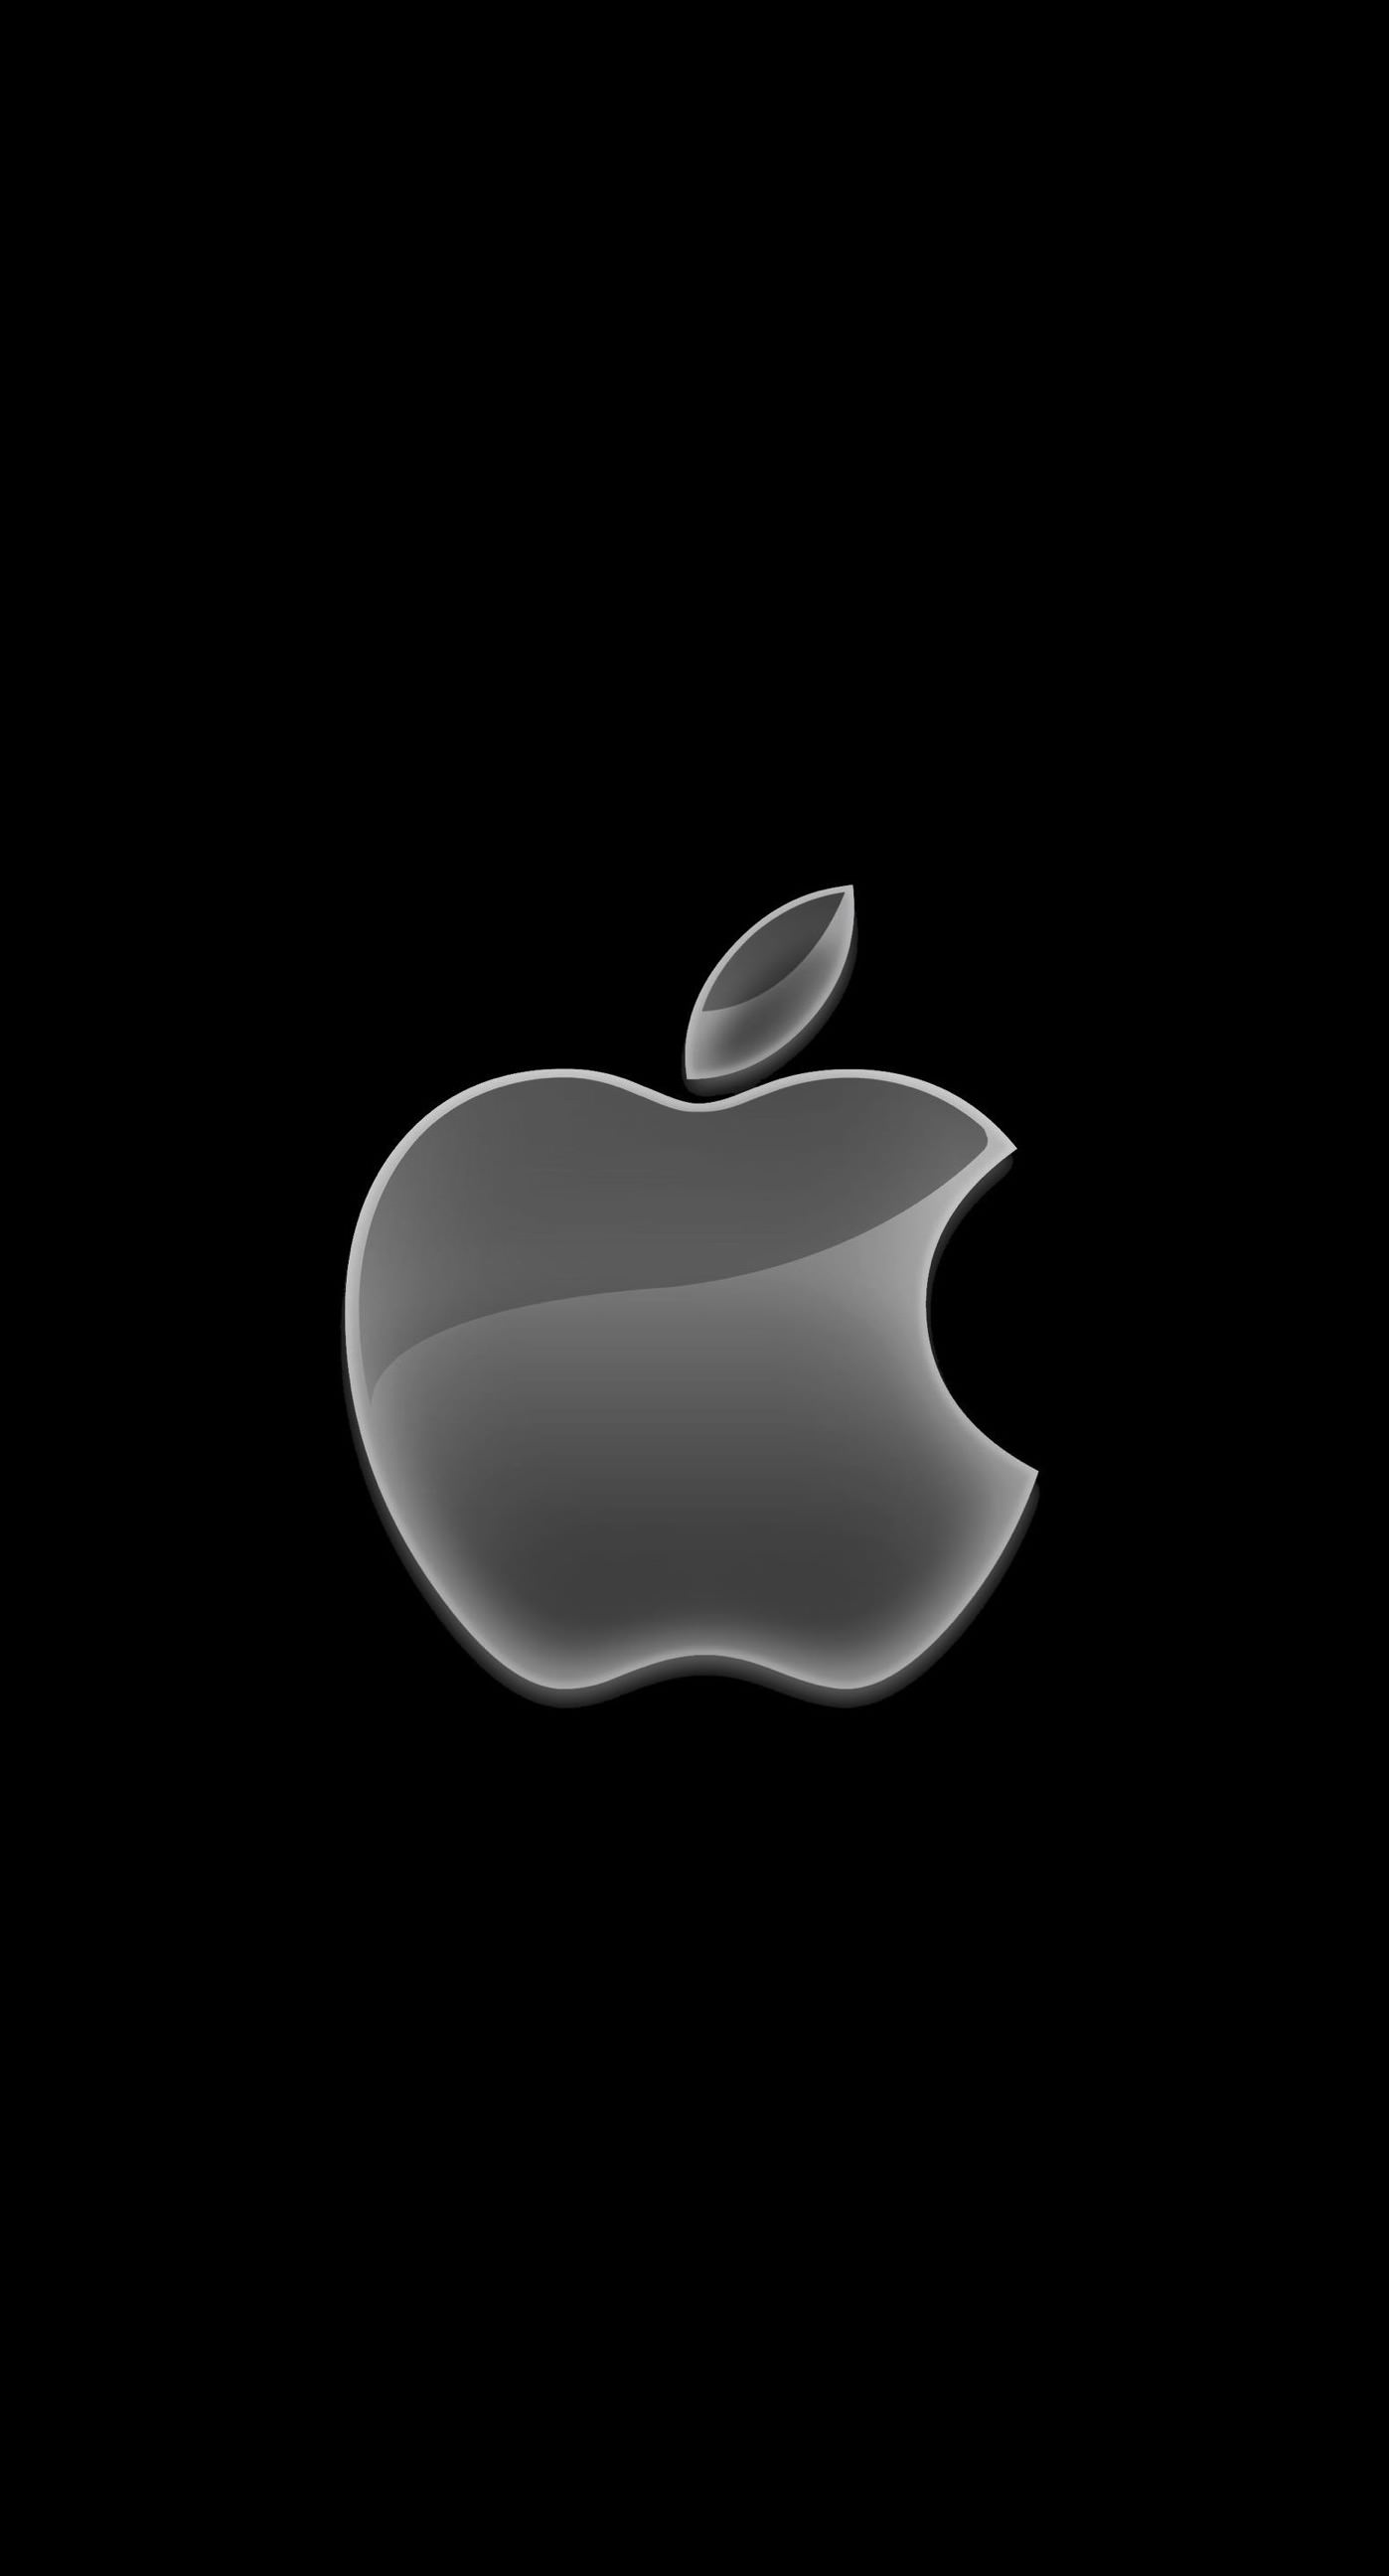 Apple Logo Black Cool Wallpapersc Iphone6splus